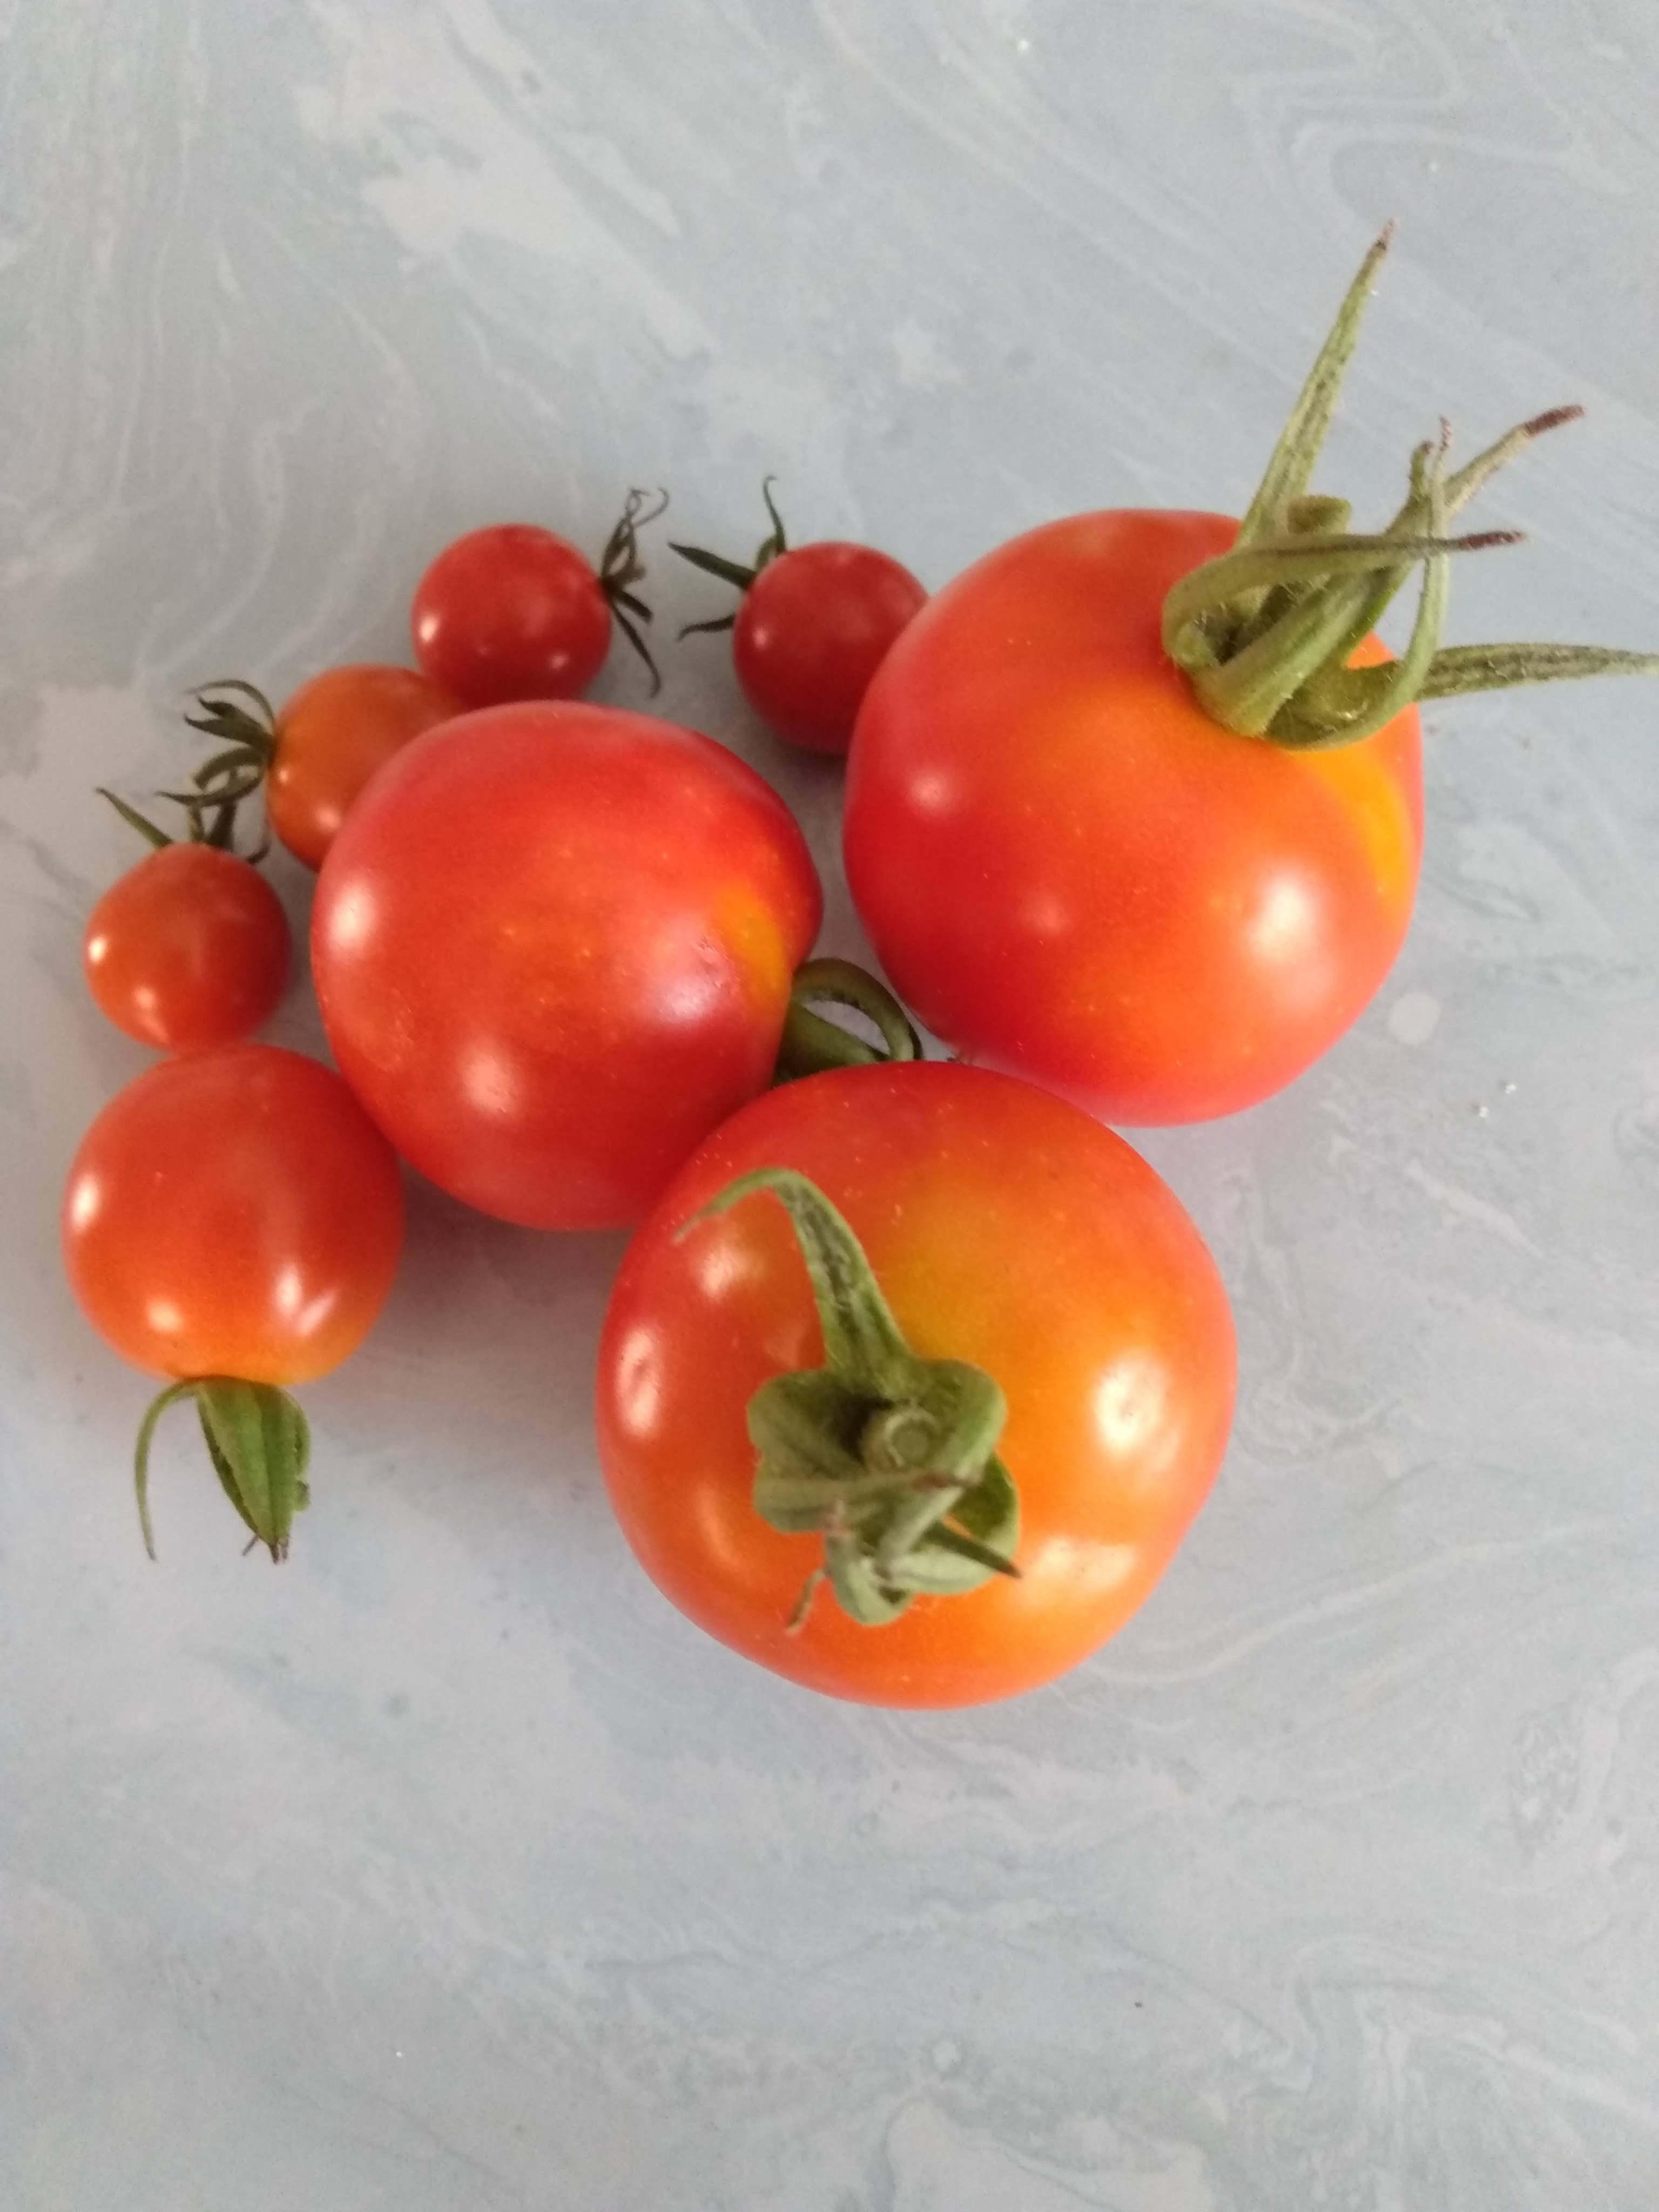 Pile of small ripe tomatoes